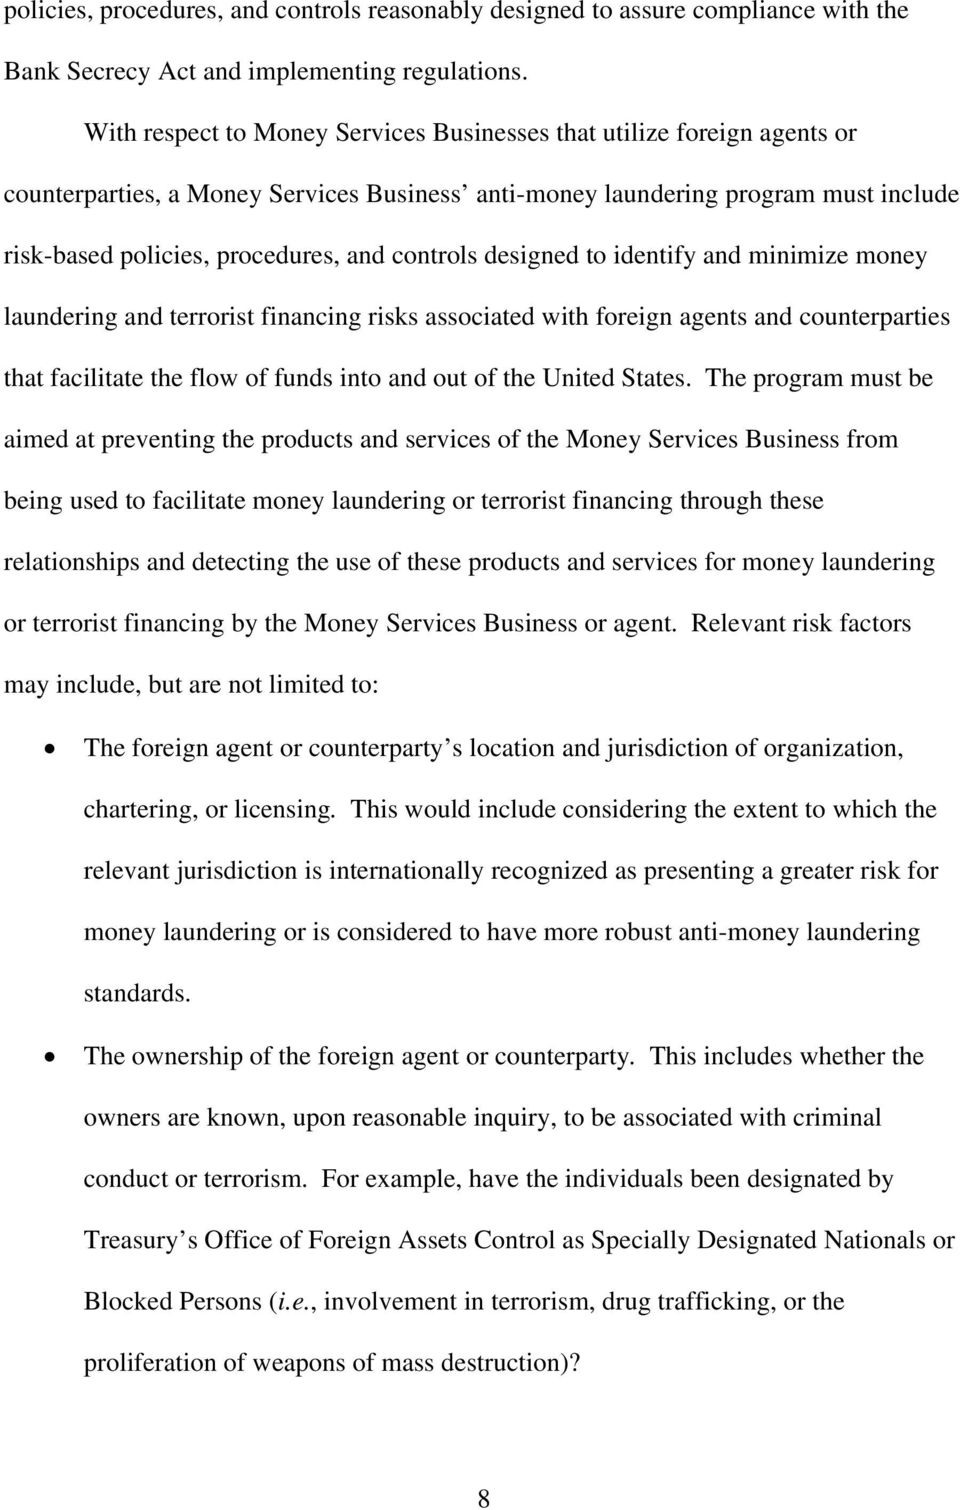 controls designed to identify and minimize money laundering and terrorist financing risks associated with foreign agents and counterparties that facilitate the flow of funds into and out of the